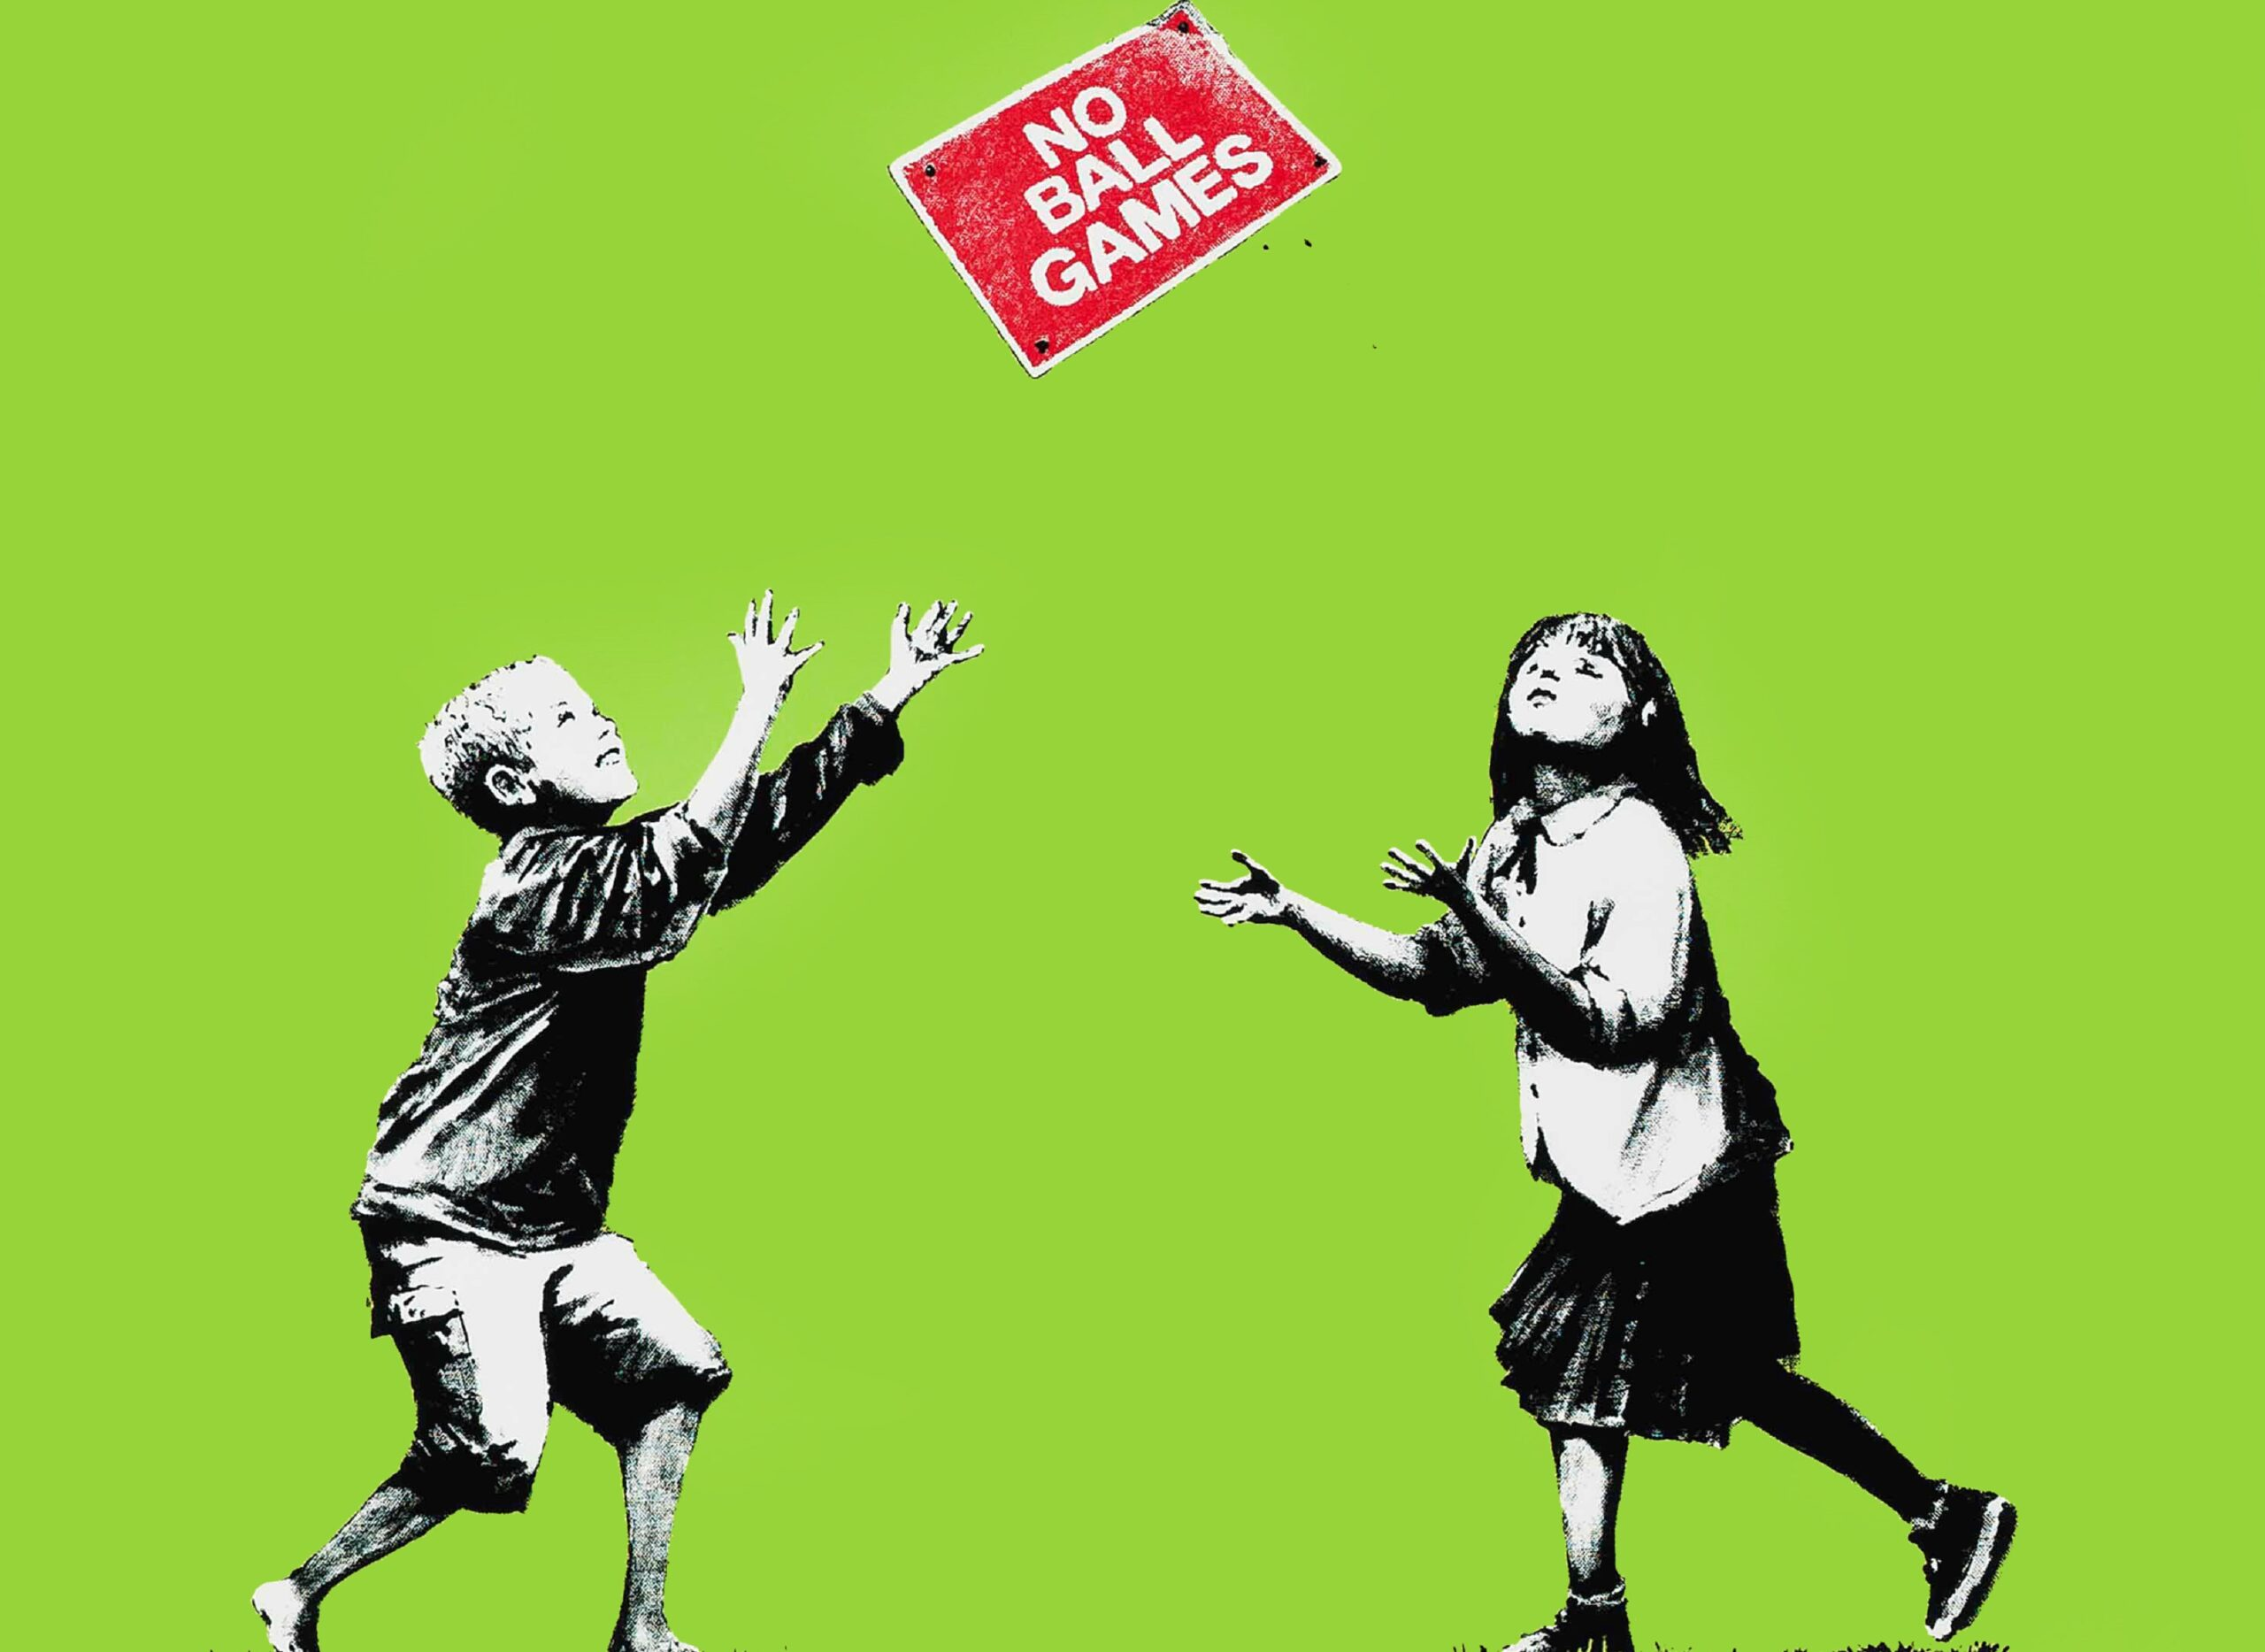 All about Banksy. In arrivo una nuova mostra a Roma